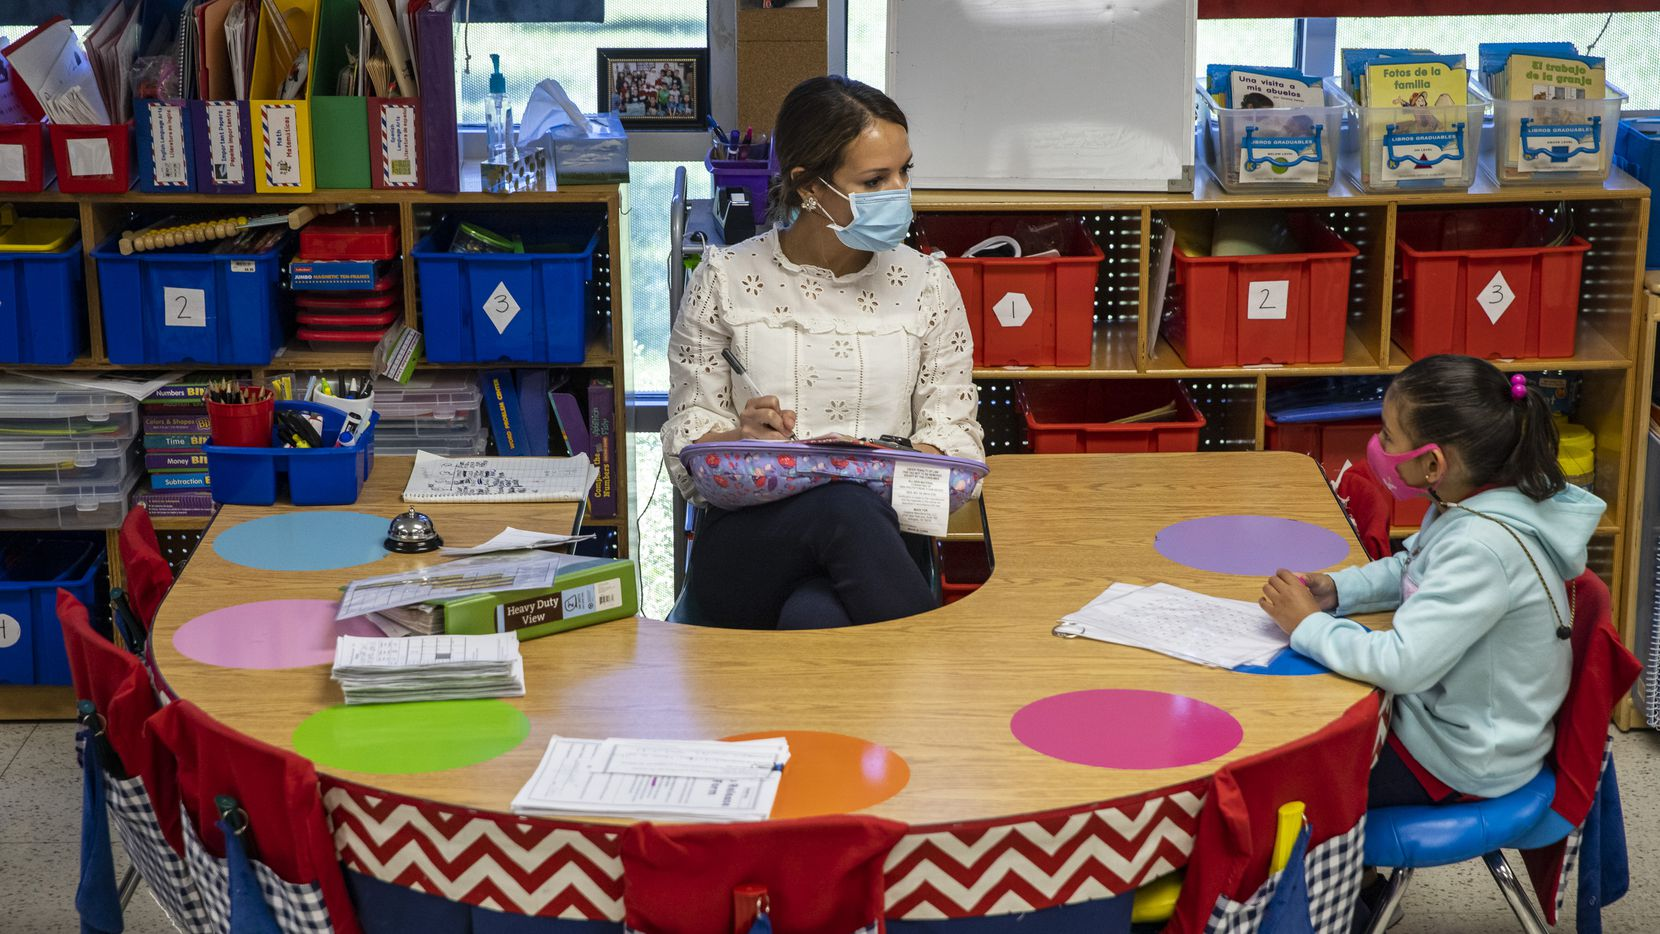 Kindergarten teacher Michelle Davis administers a quick literacy diagnostic test to Briana Vargas, 6, at F.P. Caillet Elementary in Dallas on Wednesday, May 5, 2021. These bimonthly, quick diagnostic assessments give her the info she needs to plot out how to get her students on track amid the pandemic. (Lynda M. González/The Dallas Morning News)